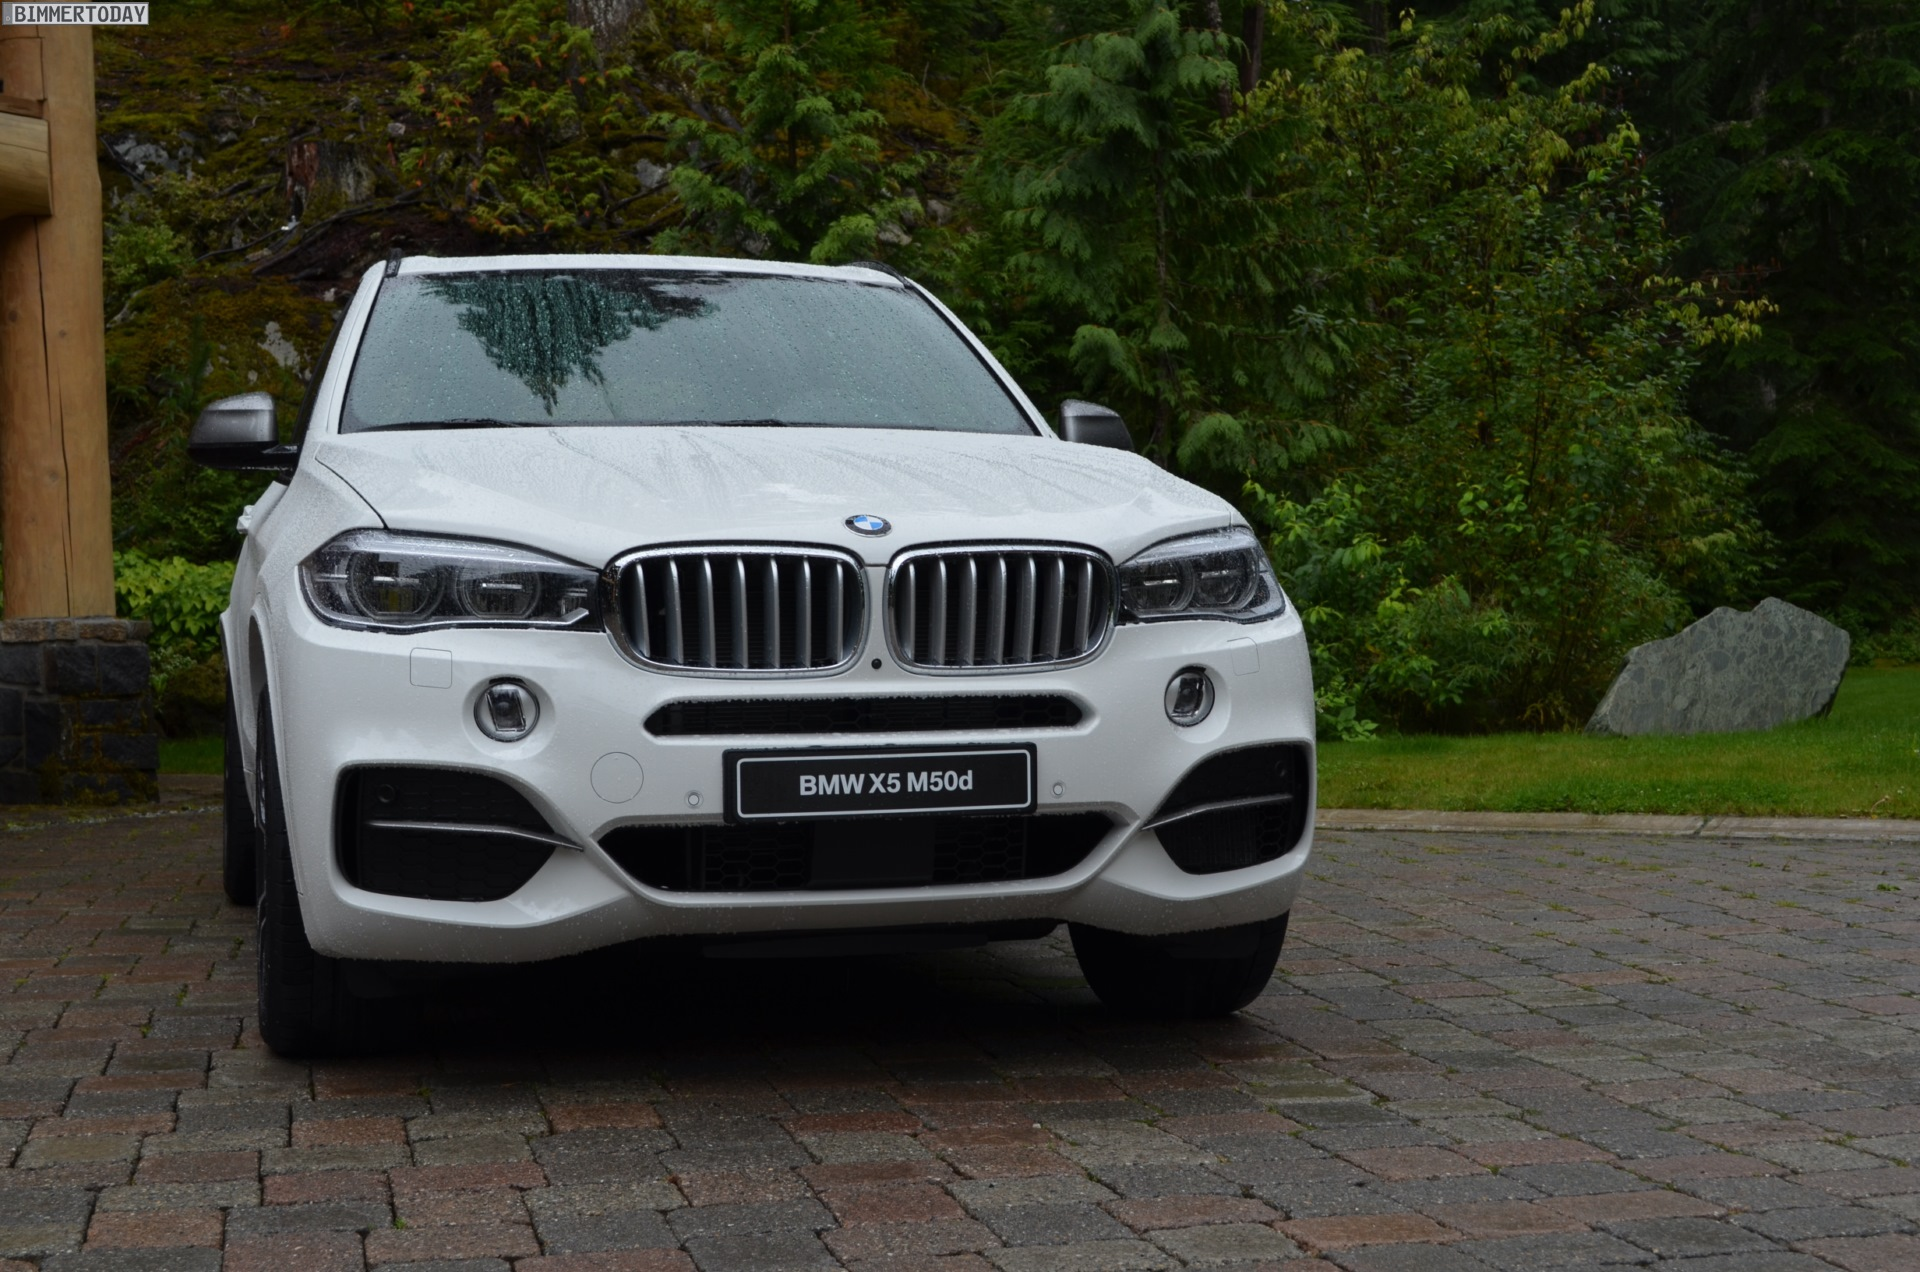 Video Review: 2014 BMW X5 M50d